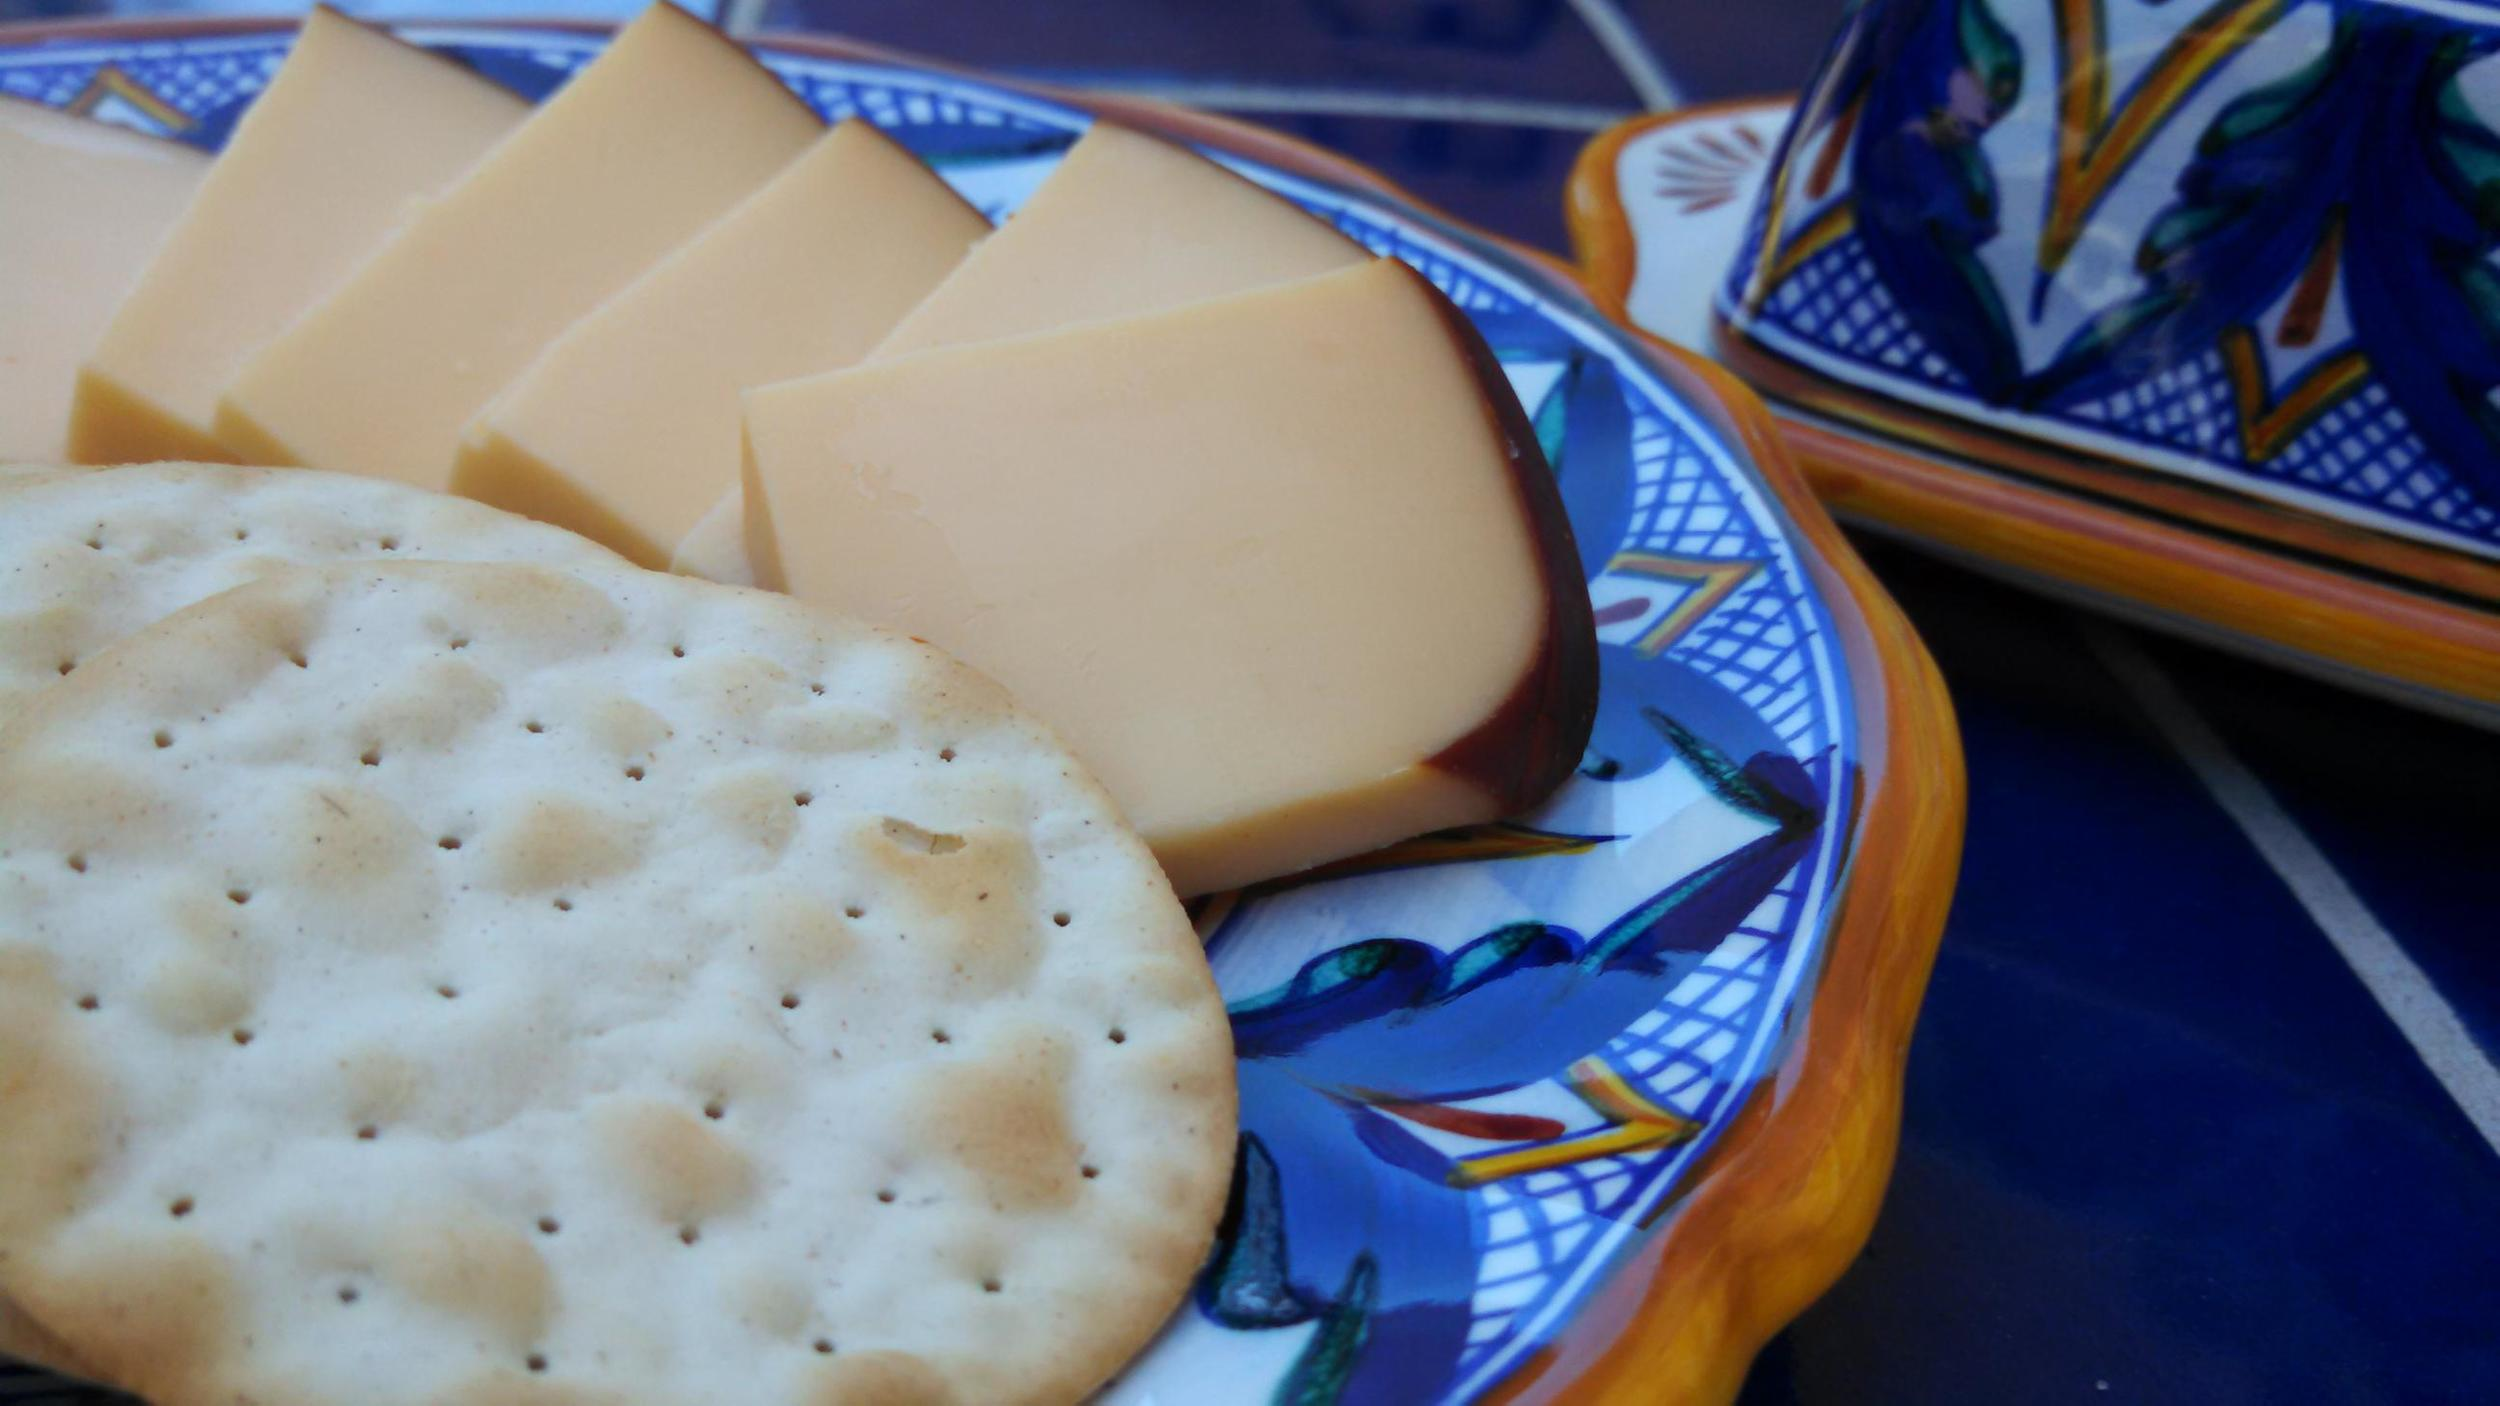 Smoked gouda is a great addition to cheese plates